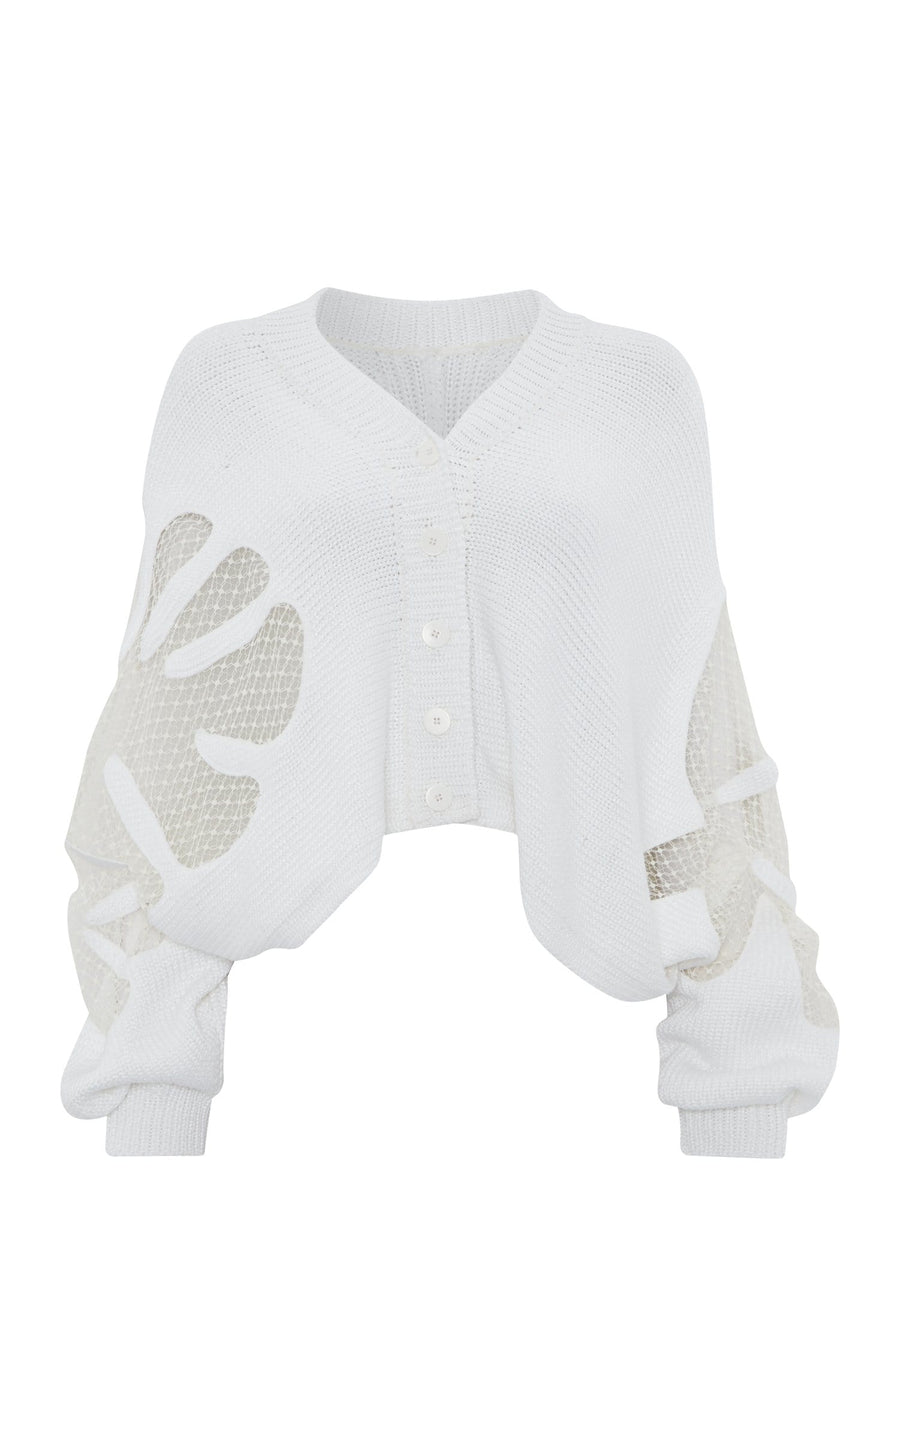 Adelaide Cardigan In White from Roland Mouret